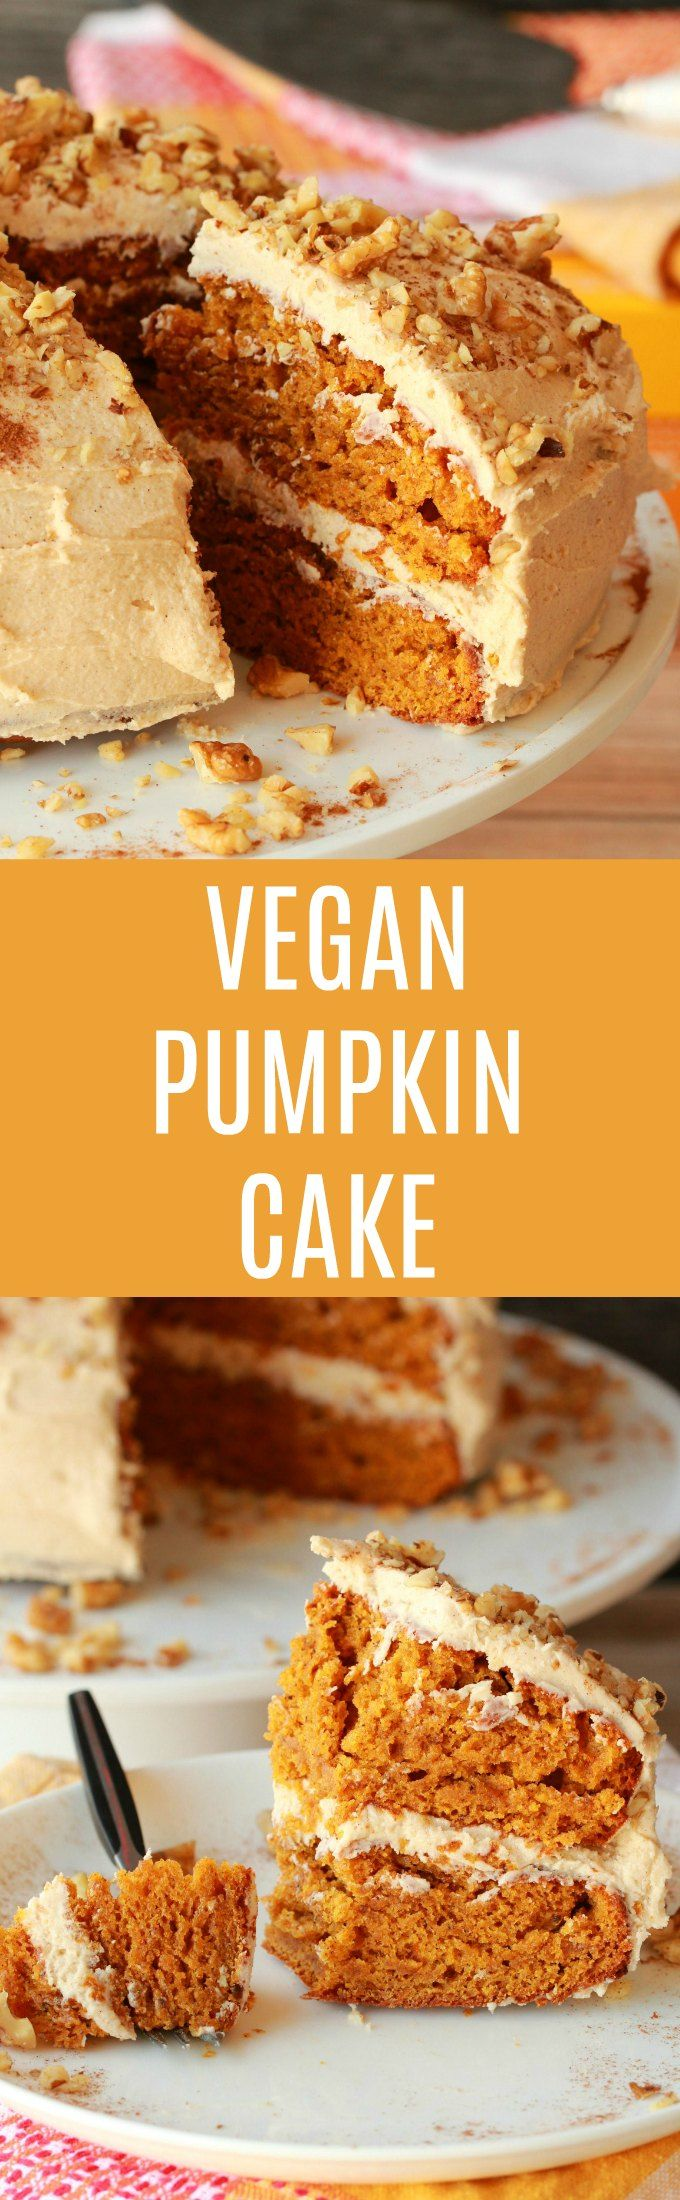 Perfectly moist and utterly delicious vegan pumpkin cake with a cinnamon buttercream frosting. Spicy and colorful and ideal for any special occasion! Vegan | Vegan Cake | Vegan Dessert | Dairy Free #vegan #vegancake #vegandessert #pumpkincake